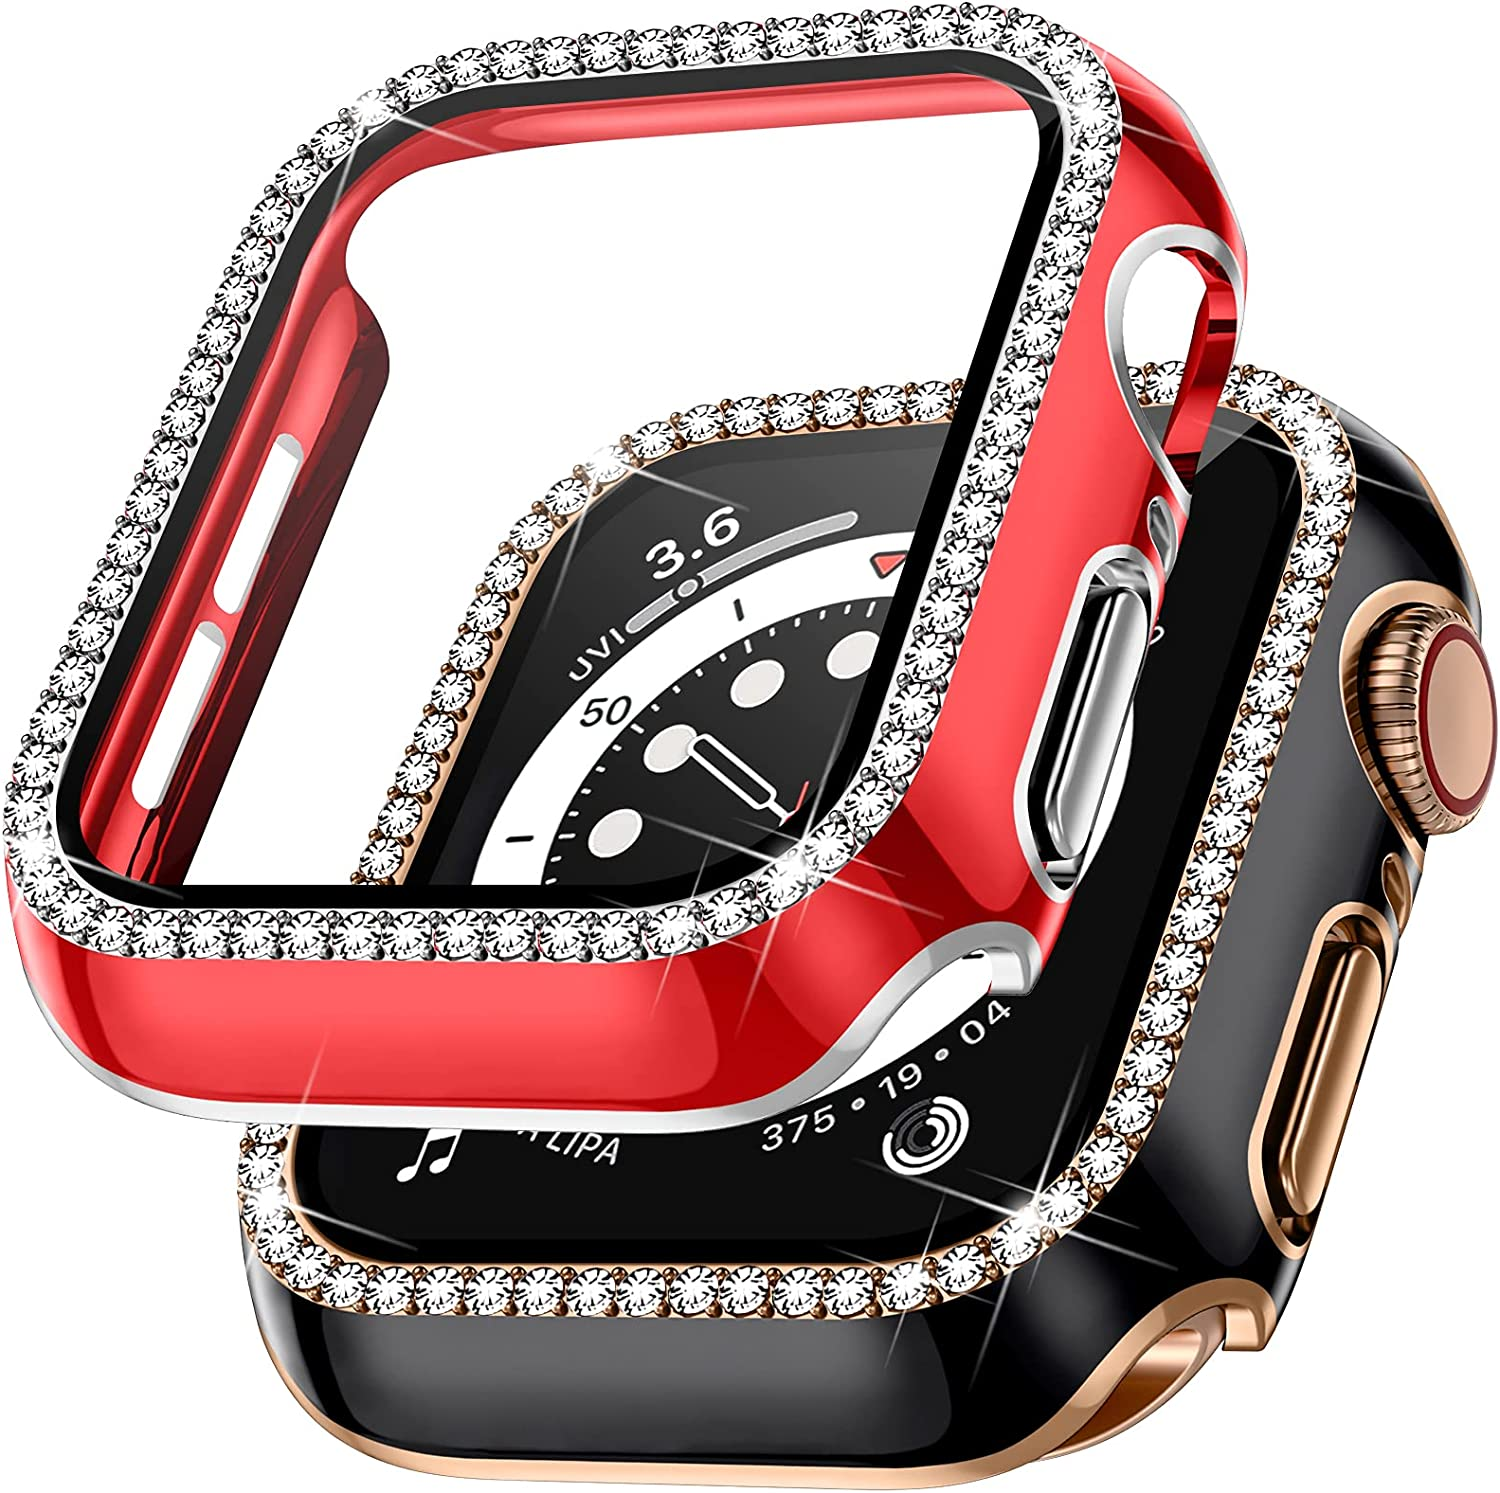 Charlam Compatible with Apple Watch Case 40mm SE iWatch Series 6 5 4 with Tempered Glass Screen Protector for Women Girls, Full Coverage Ultra-Thin Bling Diamond Frame Bumper Cover (Black/Red 40mm)